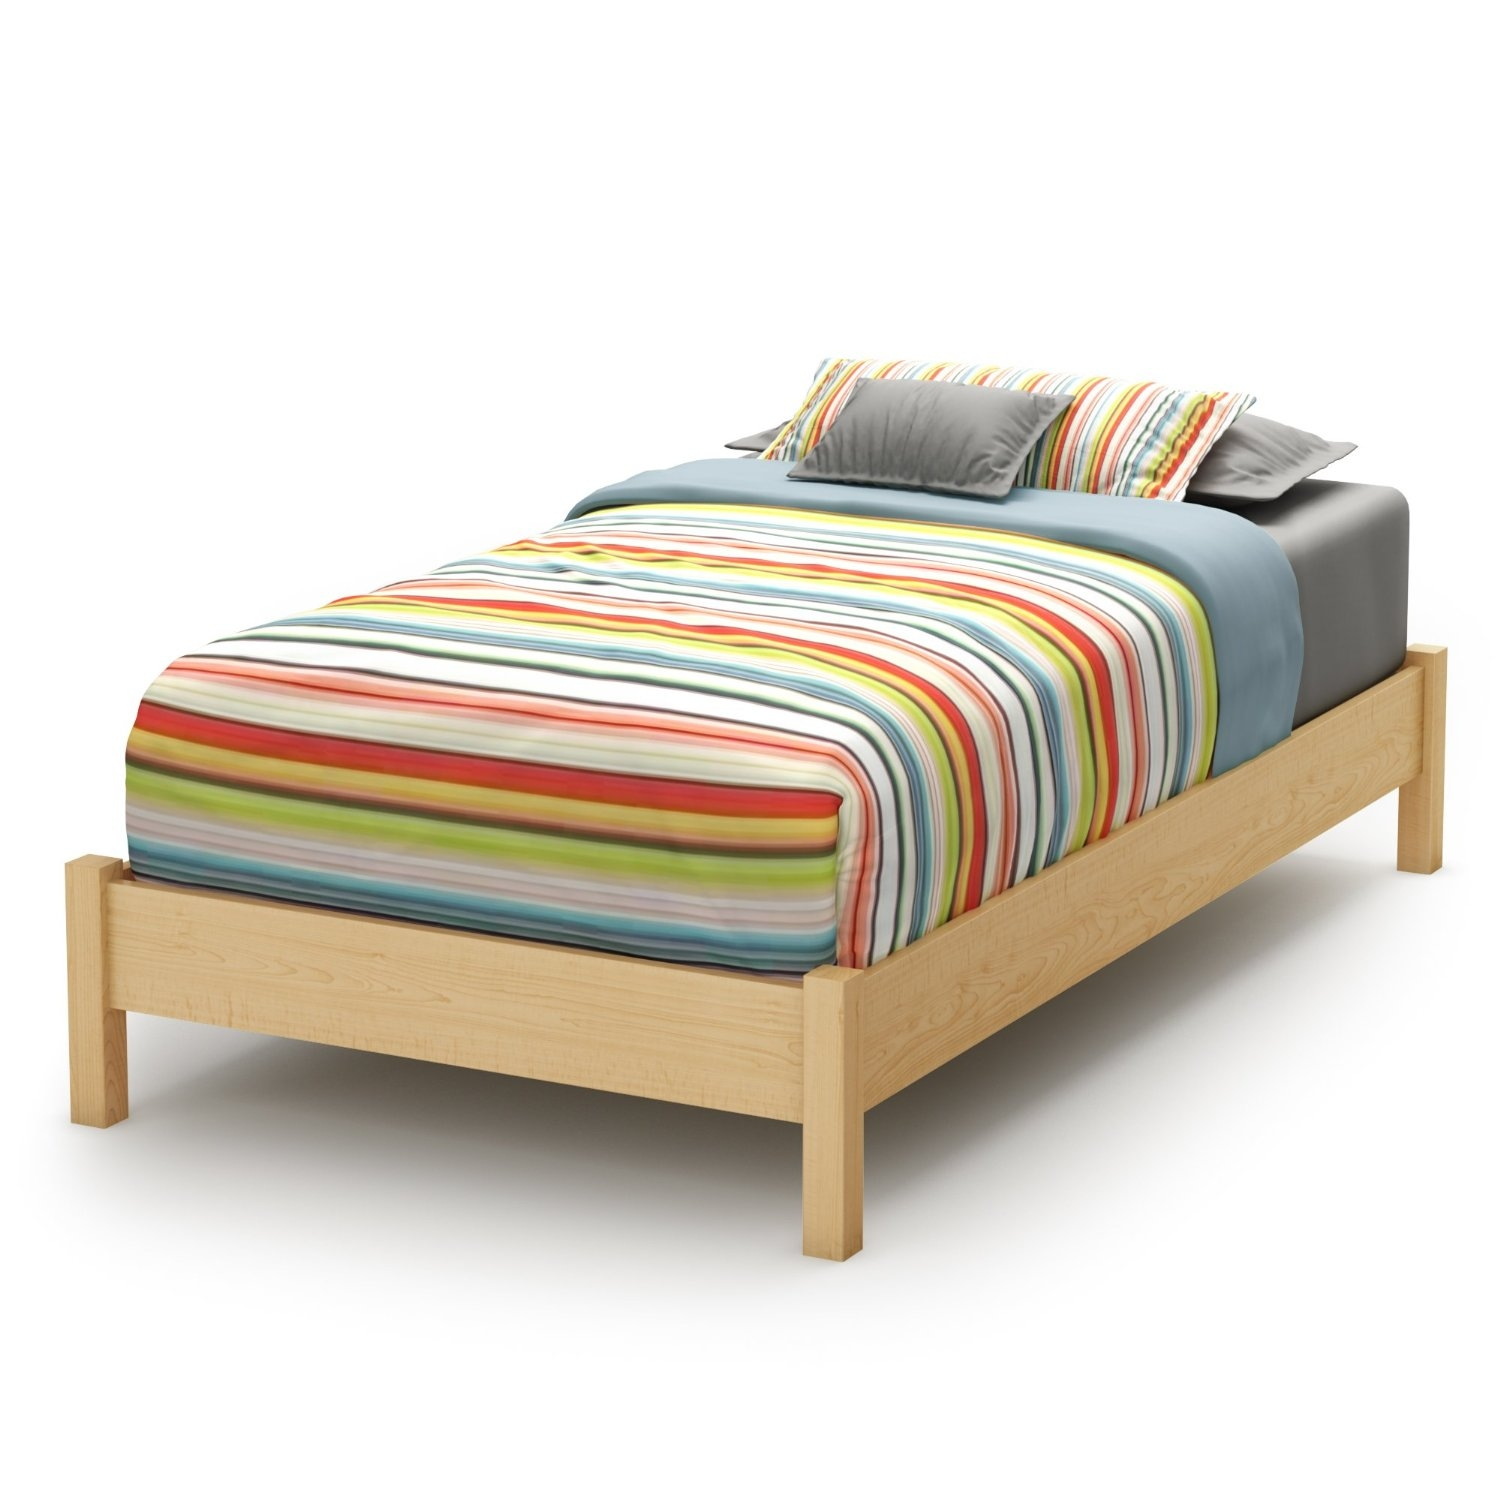 Twin Size Platform Bed Frame In Natural Wood Finish